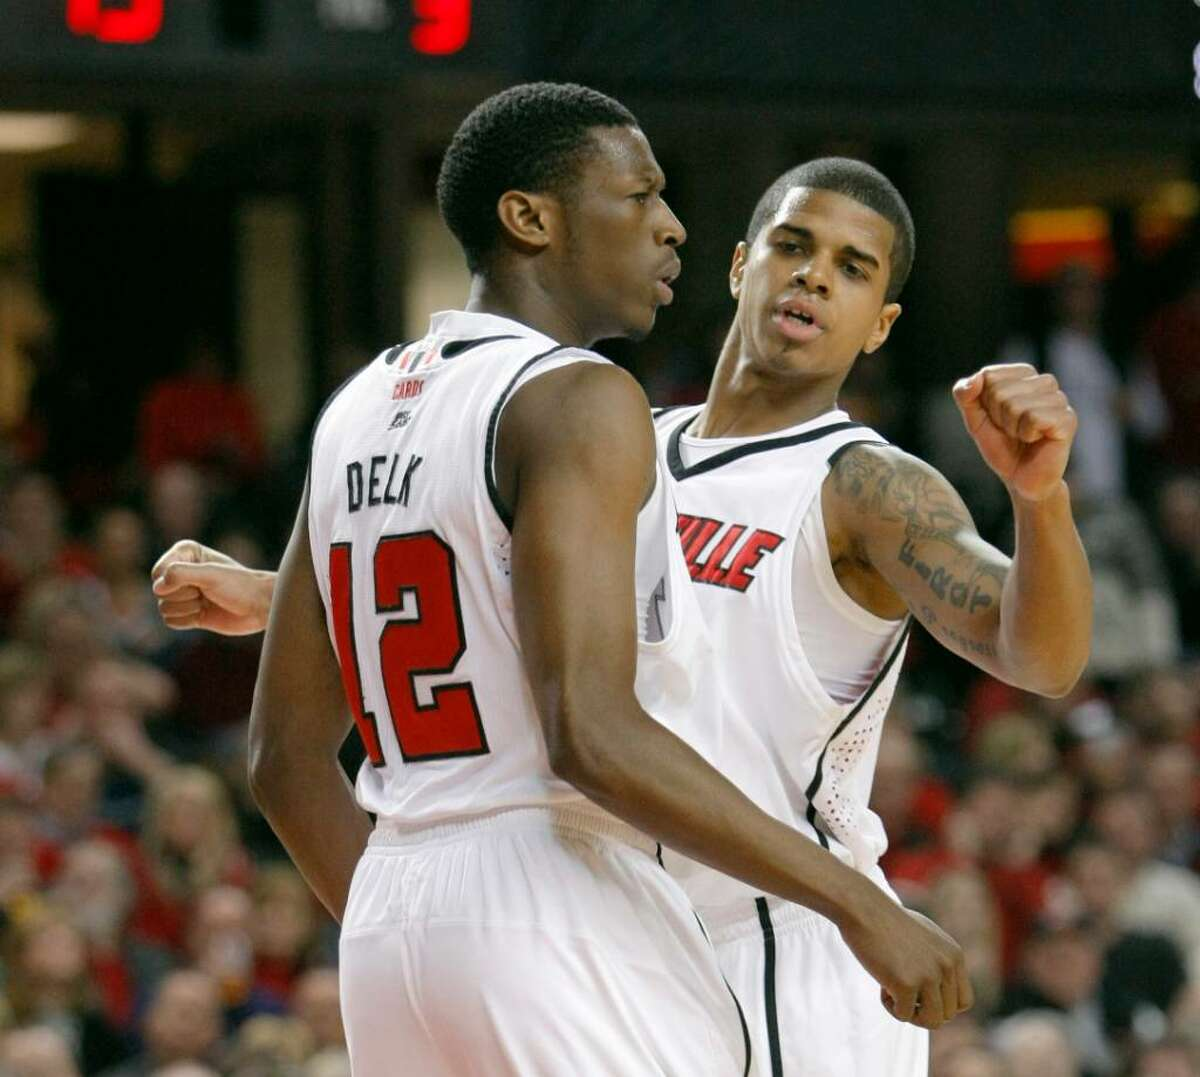 Louisville's Edgar Sosa, right, chest bumps teammate Reginald Delk during the second half of an NCAA college basketball game in Louisville, Ky., Monday, Feb. 1, 2010. Sosa scored 15 points and handed out eight assists in the 82-69 Louisville win. (AP Photo/Ed Reinke)